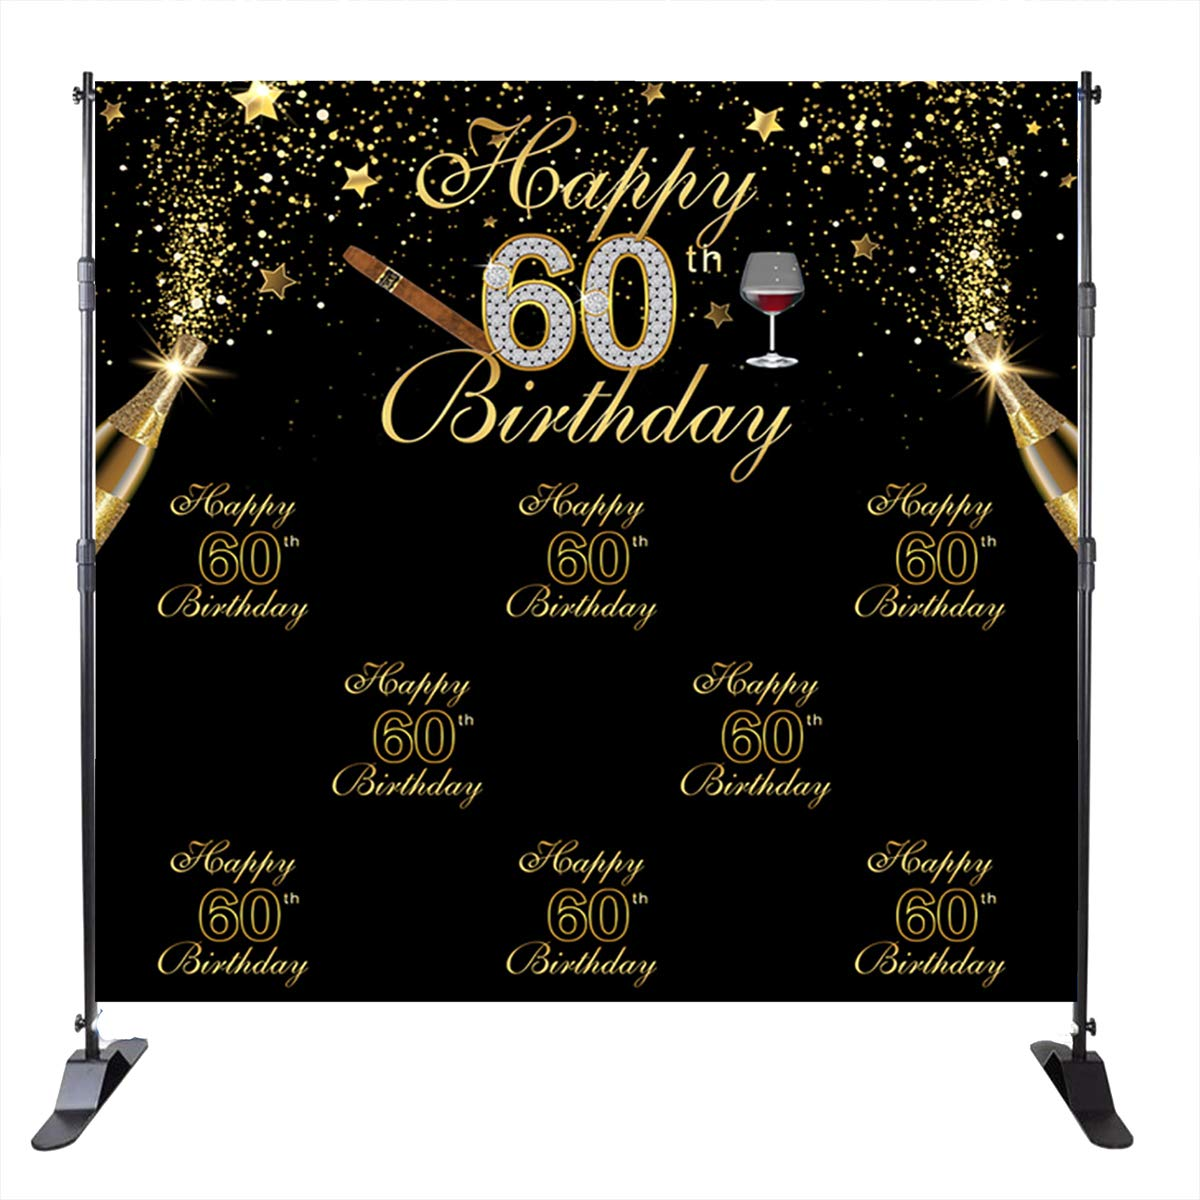 Mehofoto 60th Birthday Backdrop Champagne Cigar Background Black and Gold Star 60 Years Old Birthday Party Banner Decoration Men's Birthday Customized Photo Studio Props